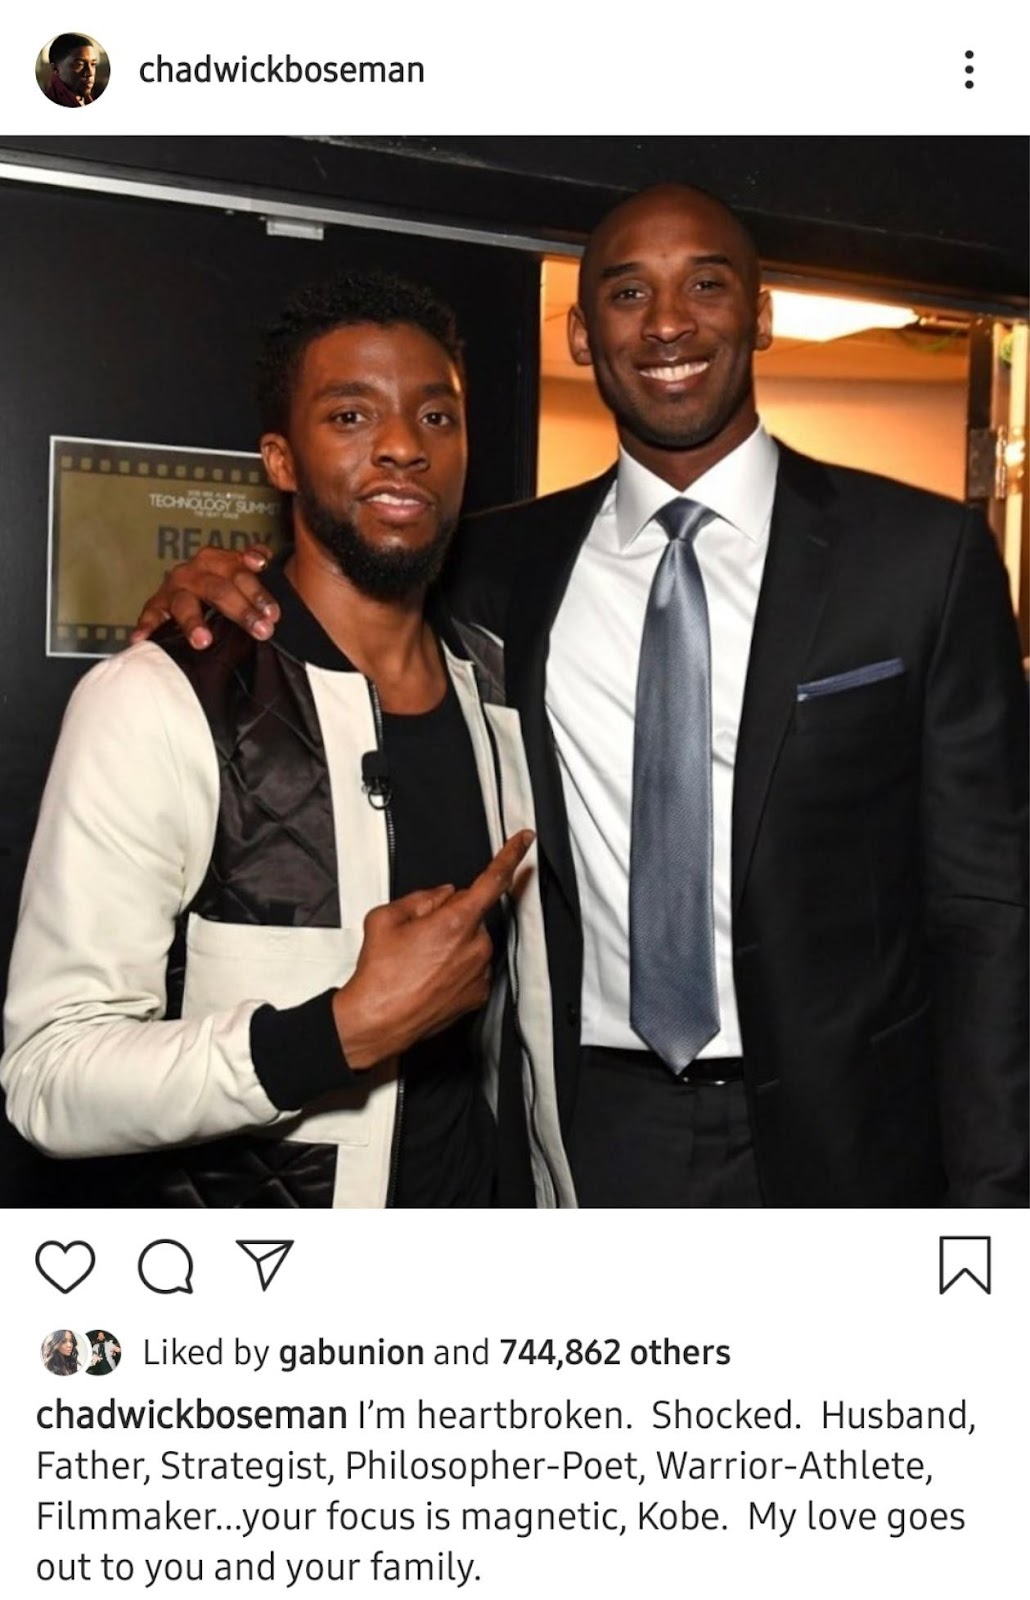 chadwickboseman Liked by gabunion and 744,862 others chadwickboseman I'm heartbroken. Shocked. Husband, Father, Strategist, Philosopher-Poet, Warrior-Athlete, Filmmaker...your focus is magnetic, Kobe. My love goes out to you and your family.